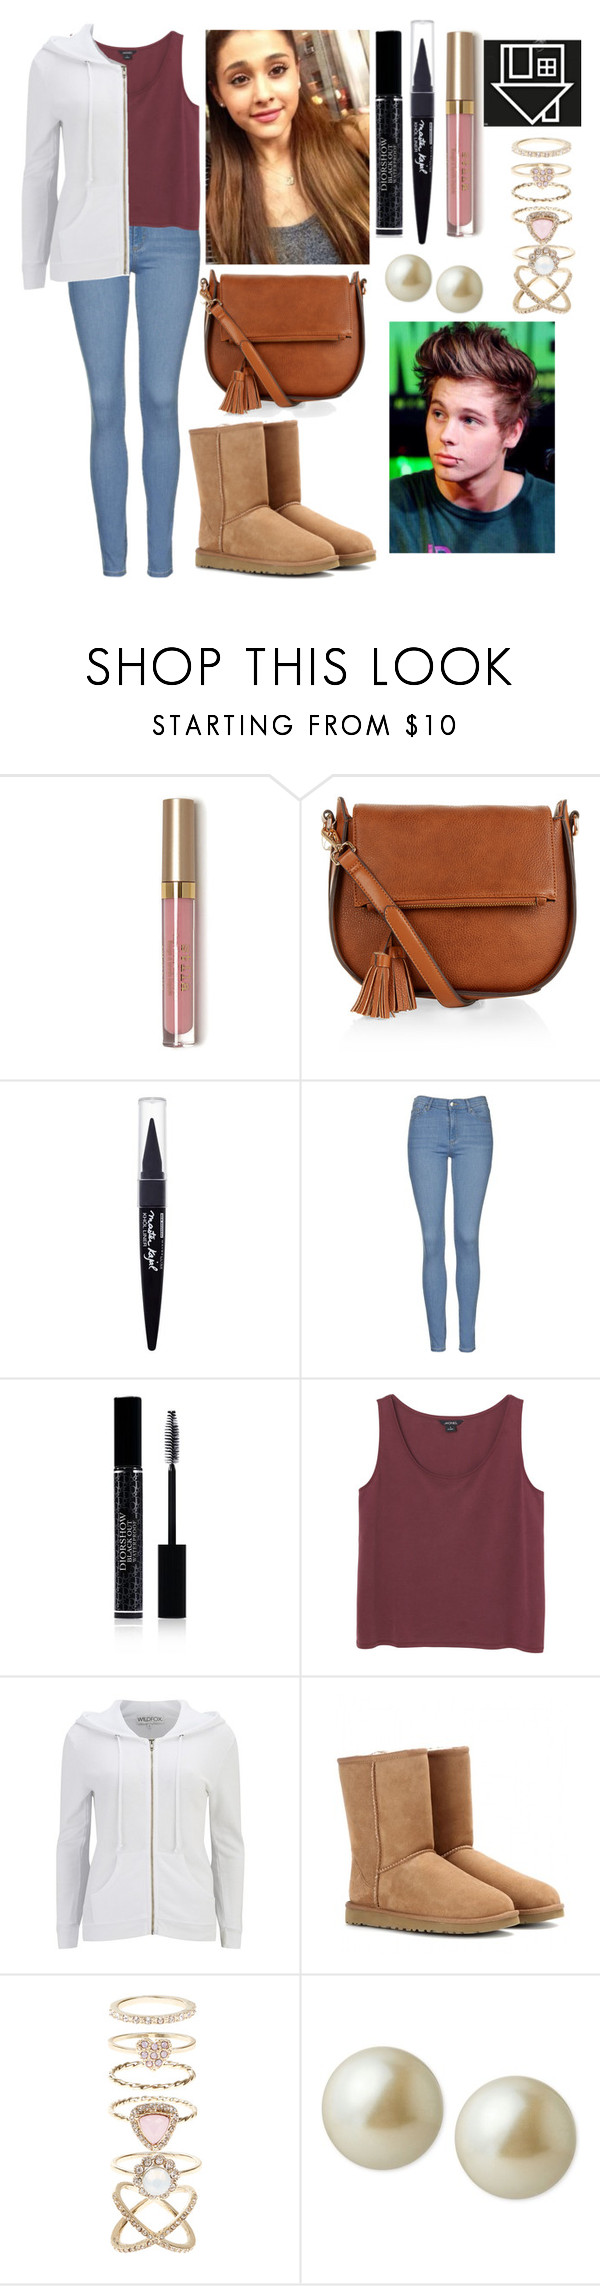 """""""Trying to keep it all together"""" by hannahcrookes ❤ liked on Polyvore featuring Monsoon, Maybelline, Topshop, Christian Dior, Monki, Wildfox, UGG Australia, Accessorize, Carolee and women's clothing"""